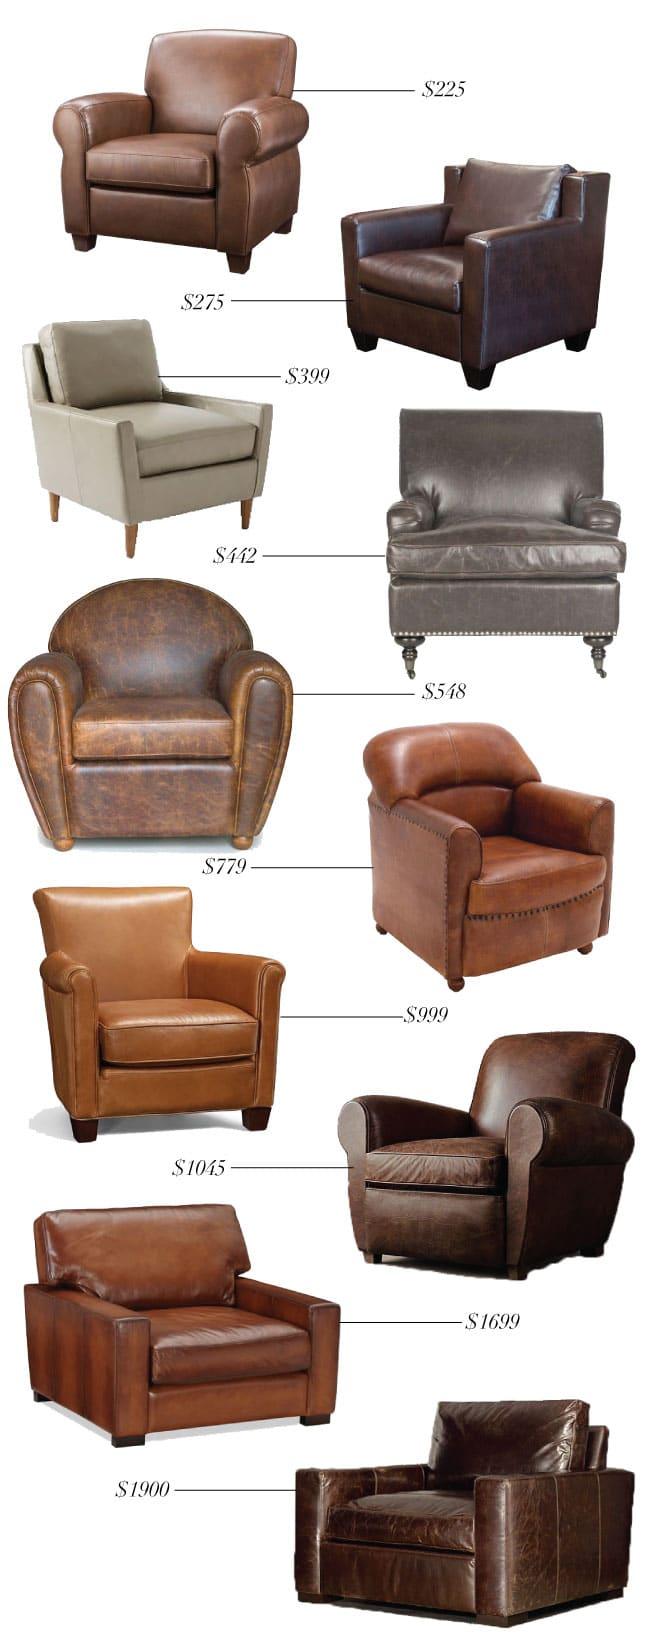 leather-chairs-for-every-budget